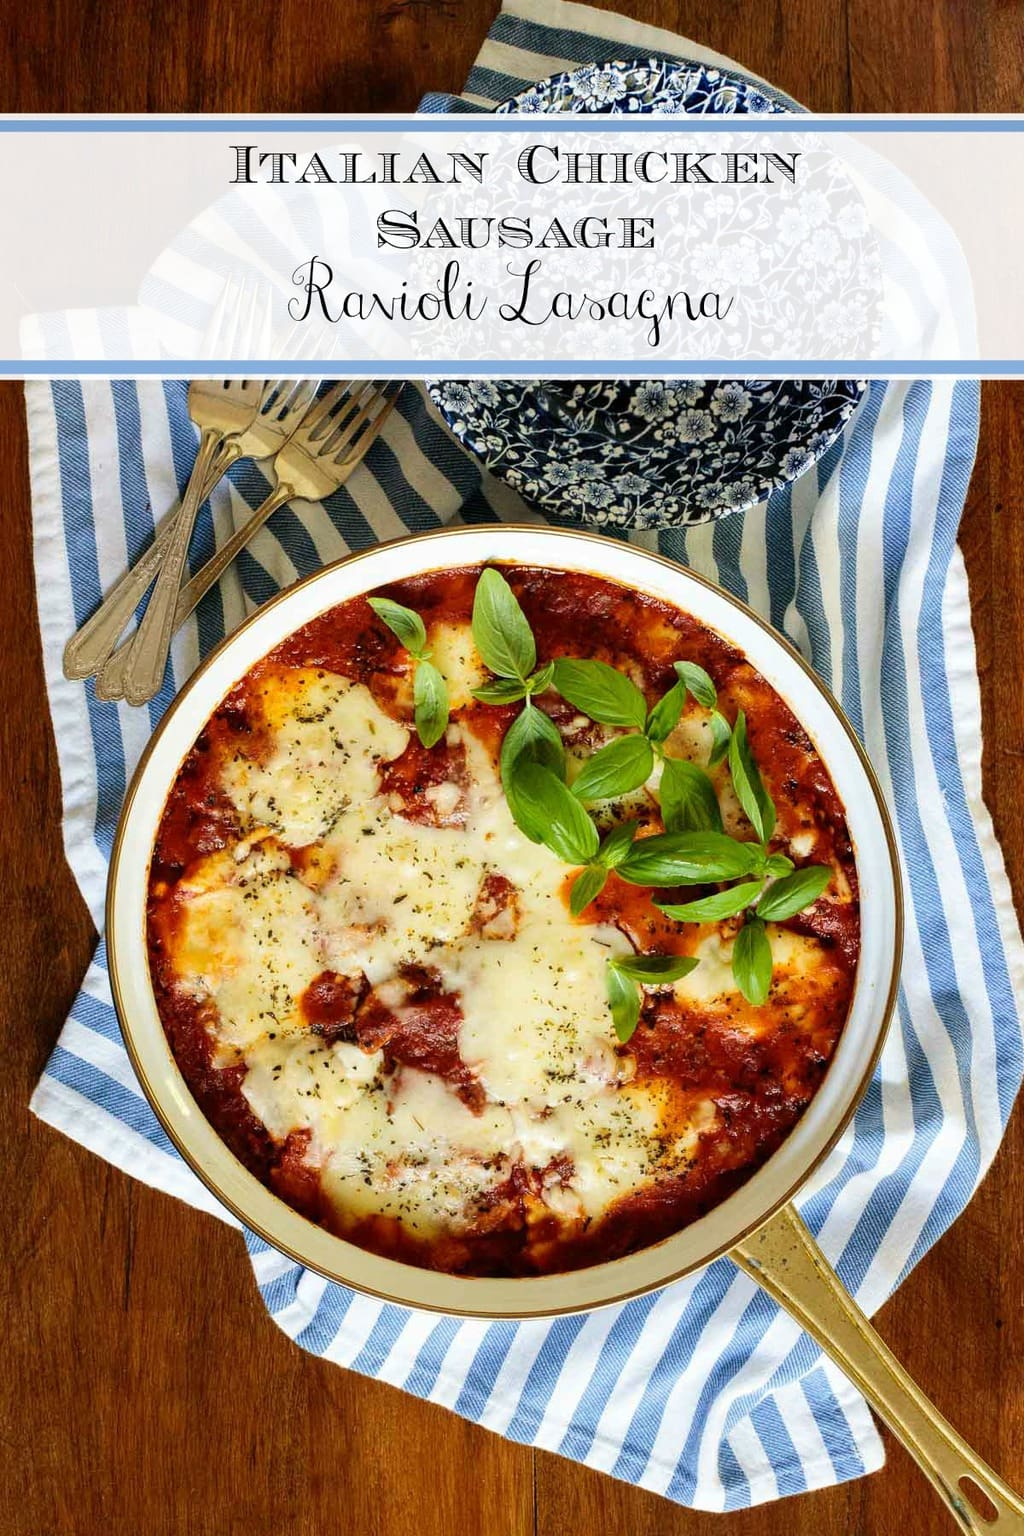 This make-ahead Italian Chicken Sausage Ravioli Lasagna is bursting with fabulous Italian flavor and tastes like you labored for hours. No one has to know the delicious little secret. #raviolilasagna, #easylasagna, #makeaheadlasgna, #chickensausagelasagna